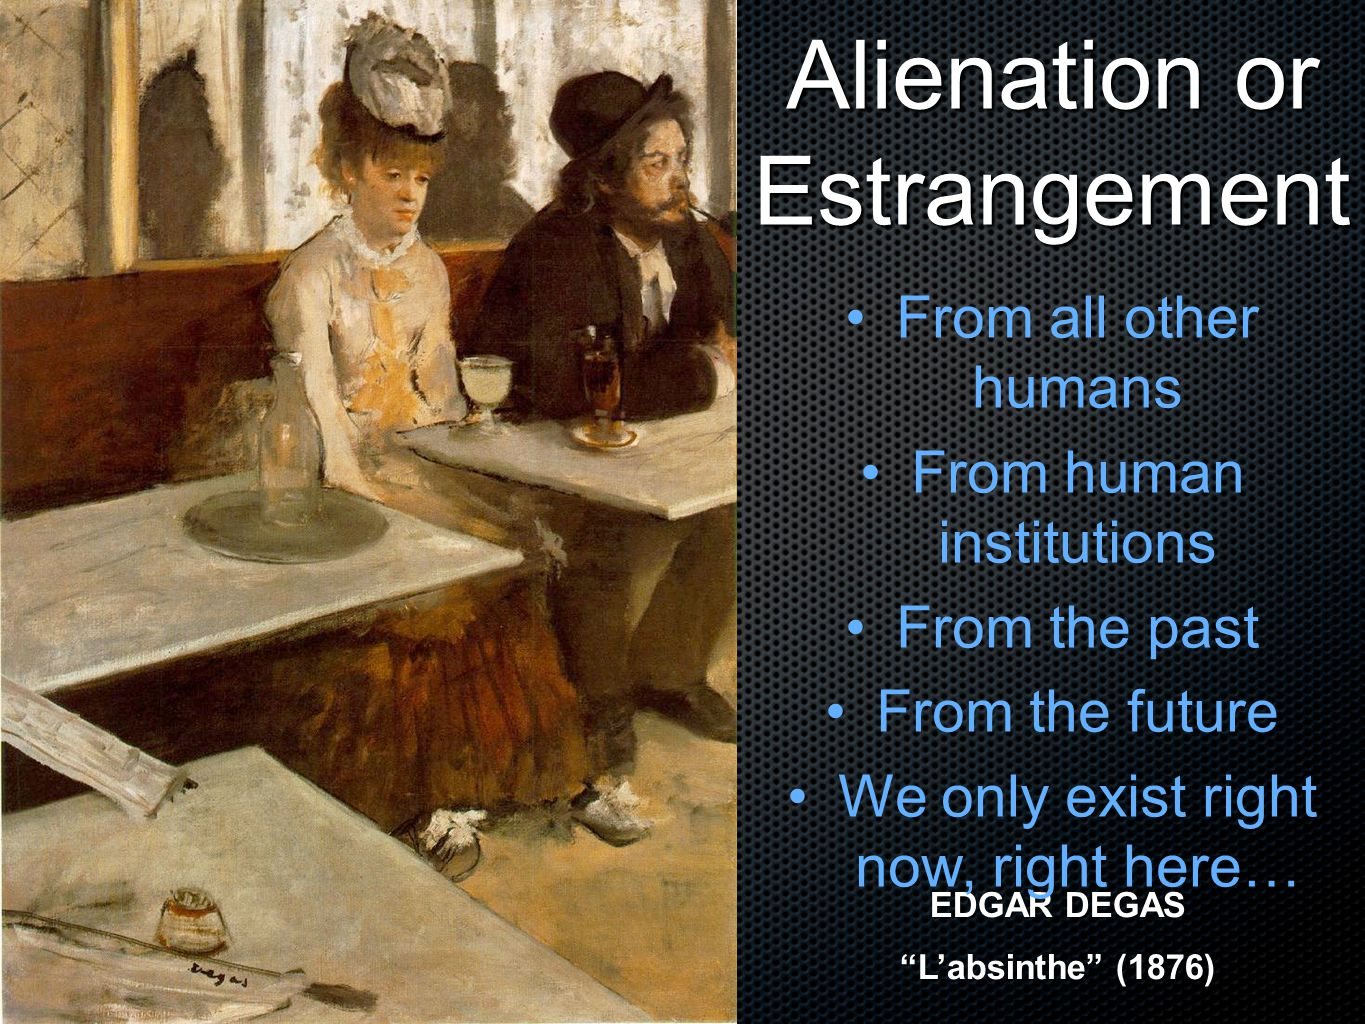 Alienation or Estrangement